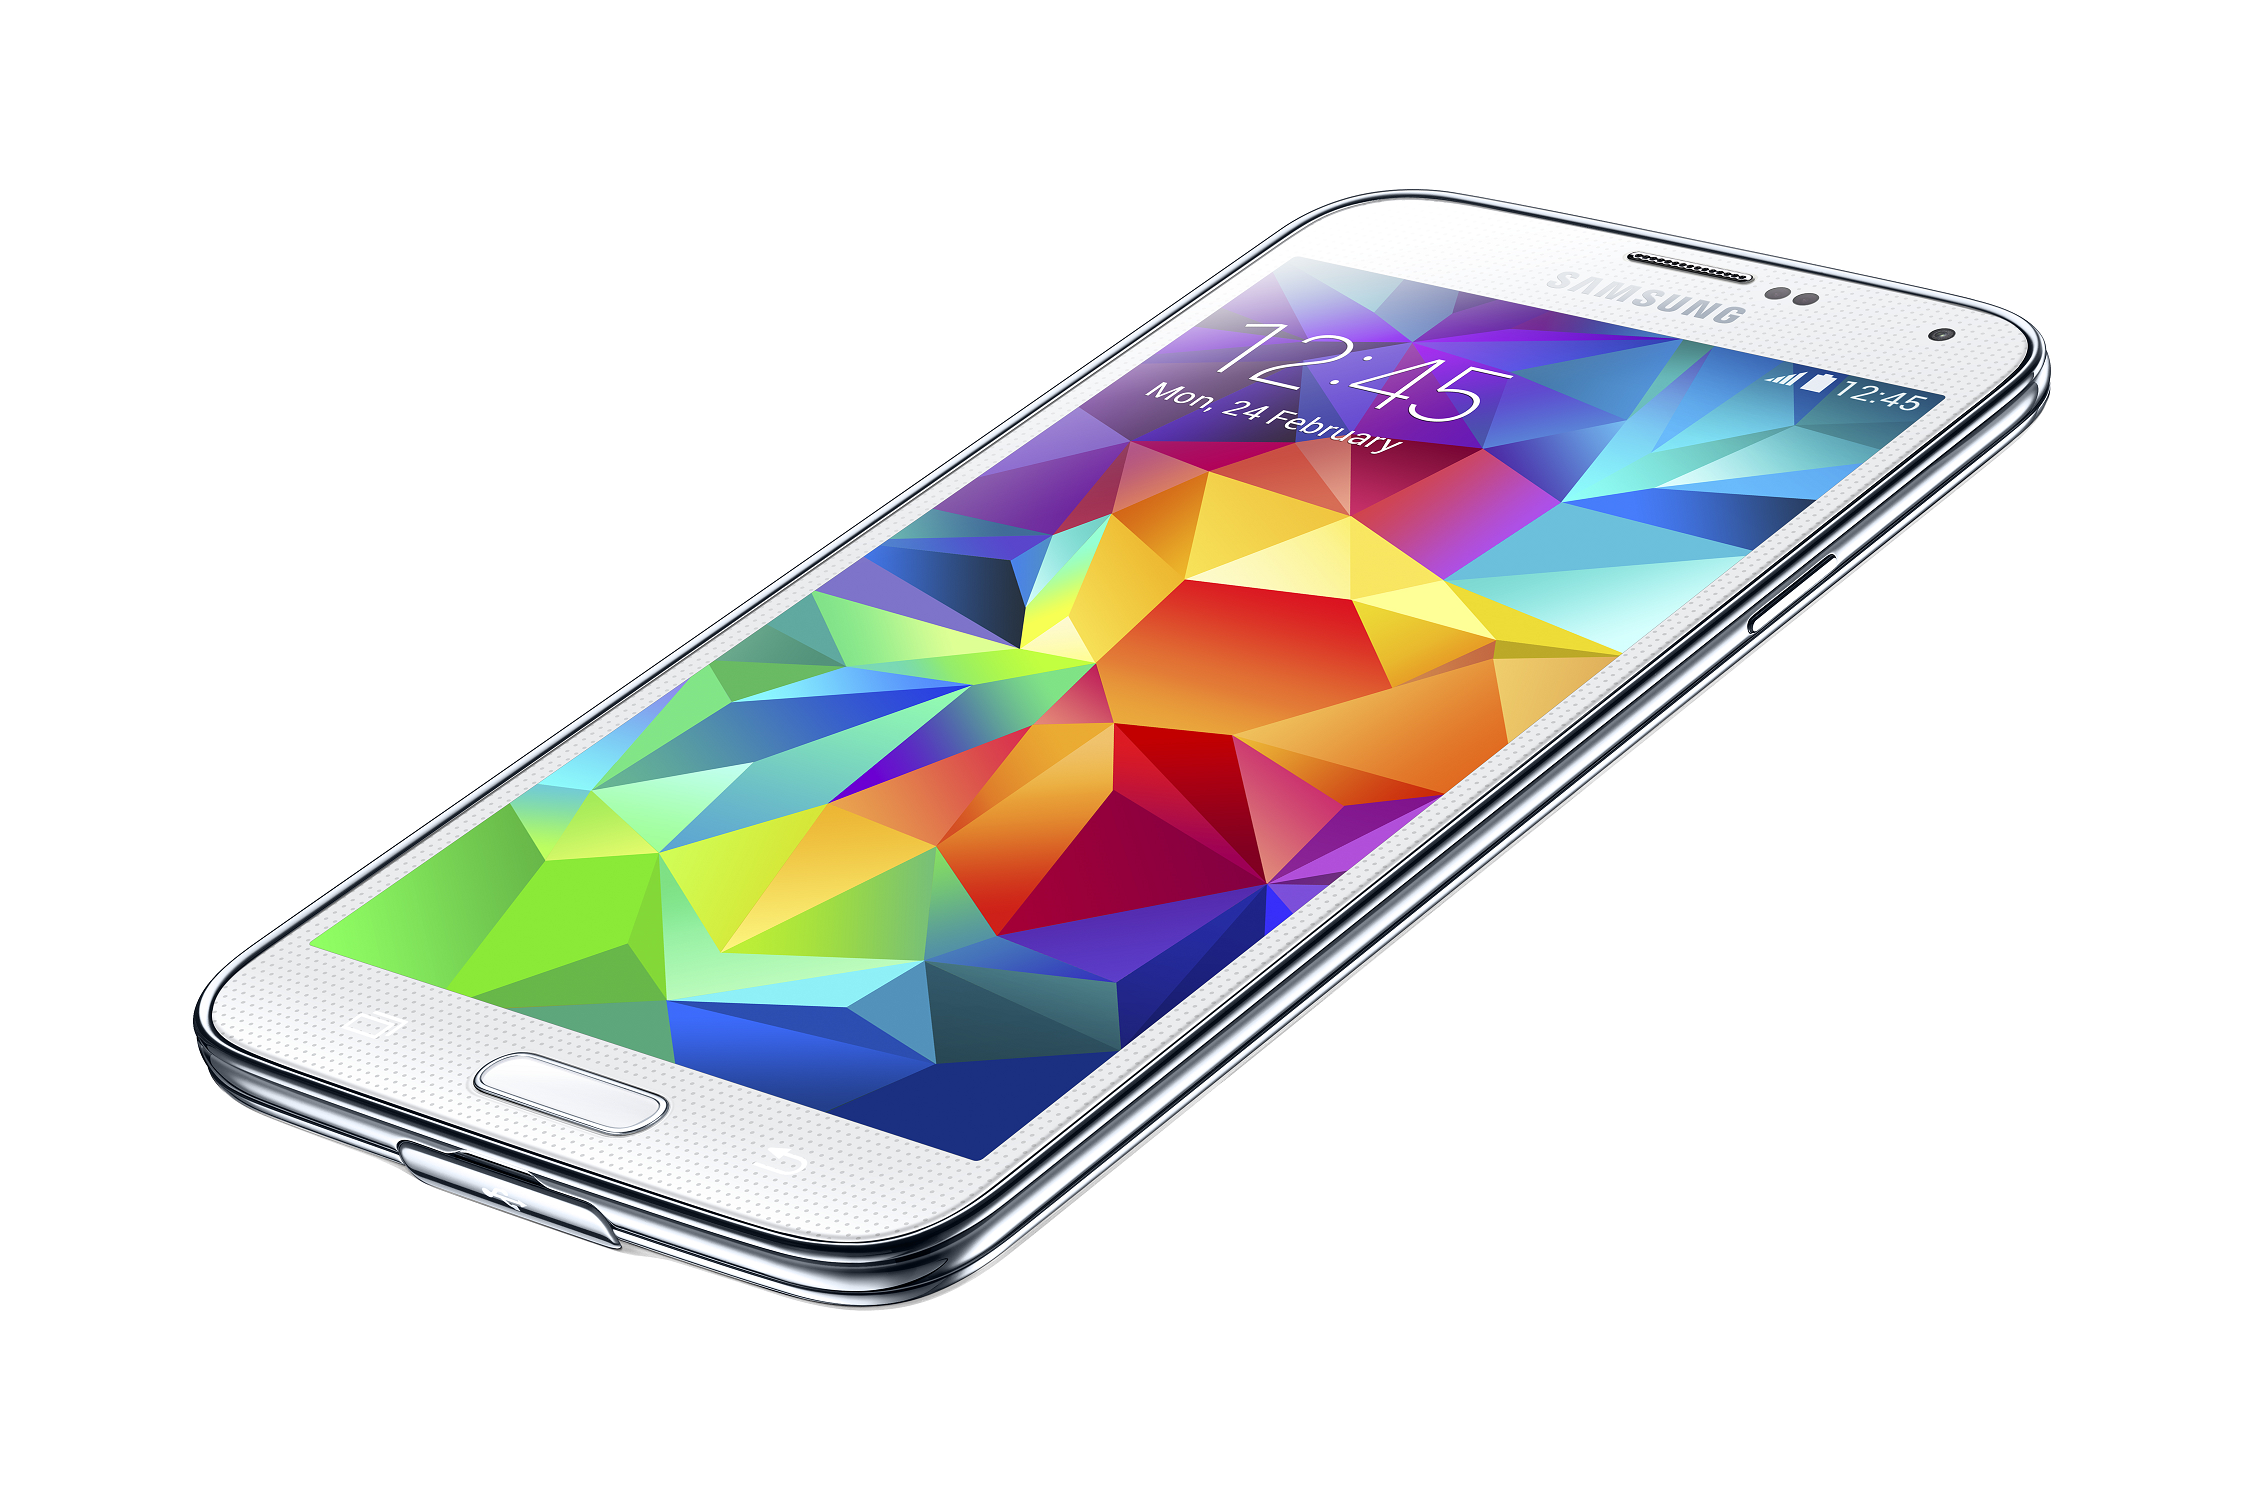 Samsung Galaxy S5 White - TOP 10 : Smartphones of 2014